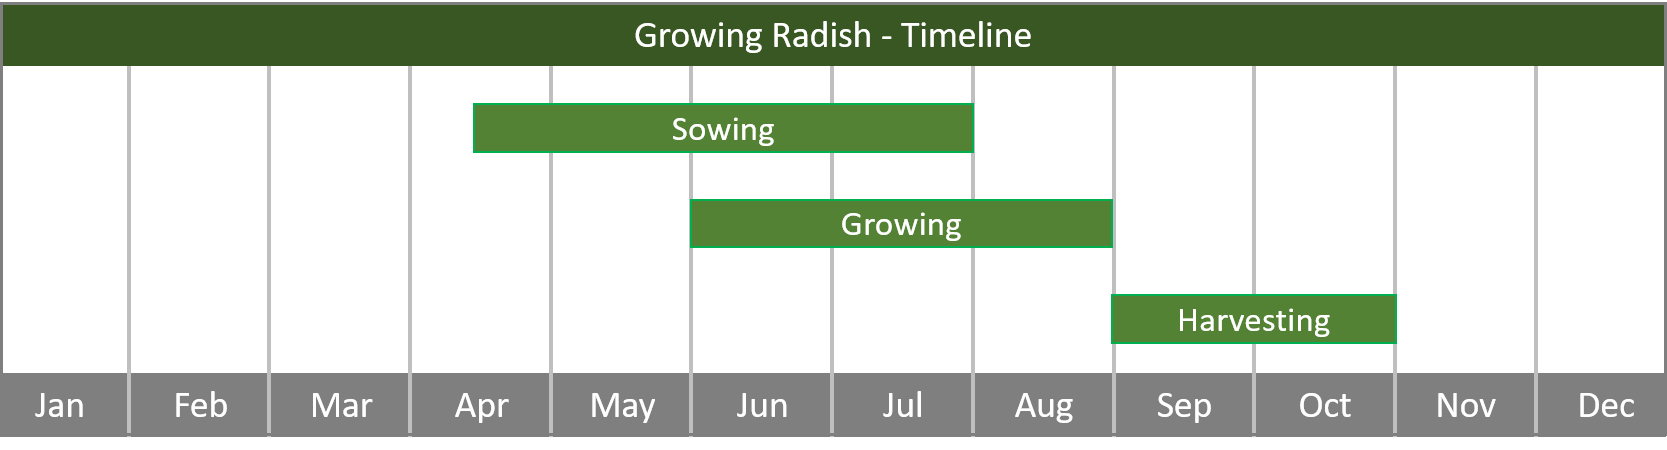 how to grow radish from seed to harvest timeline